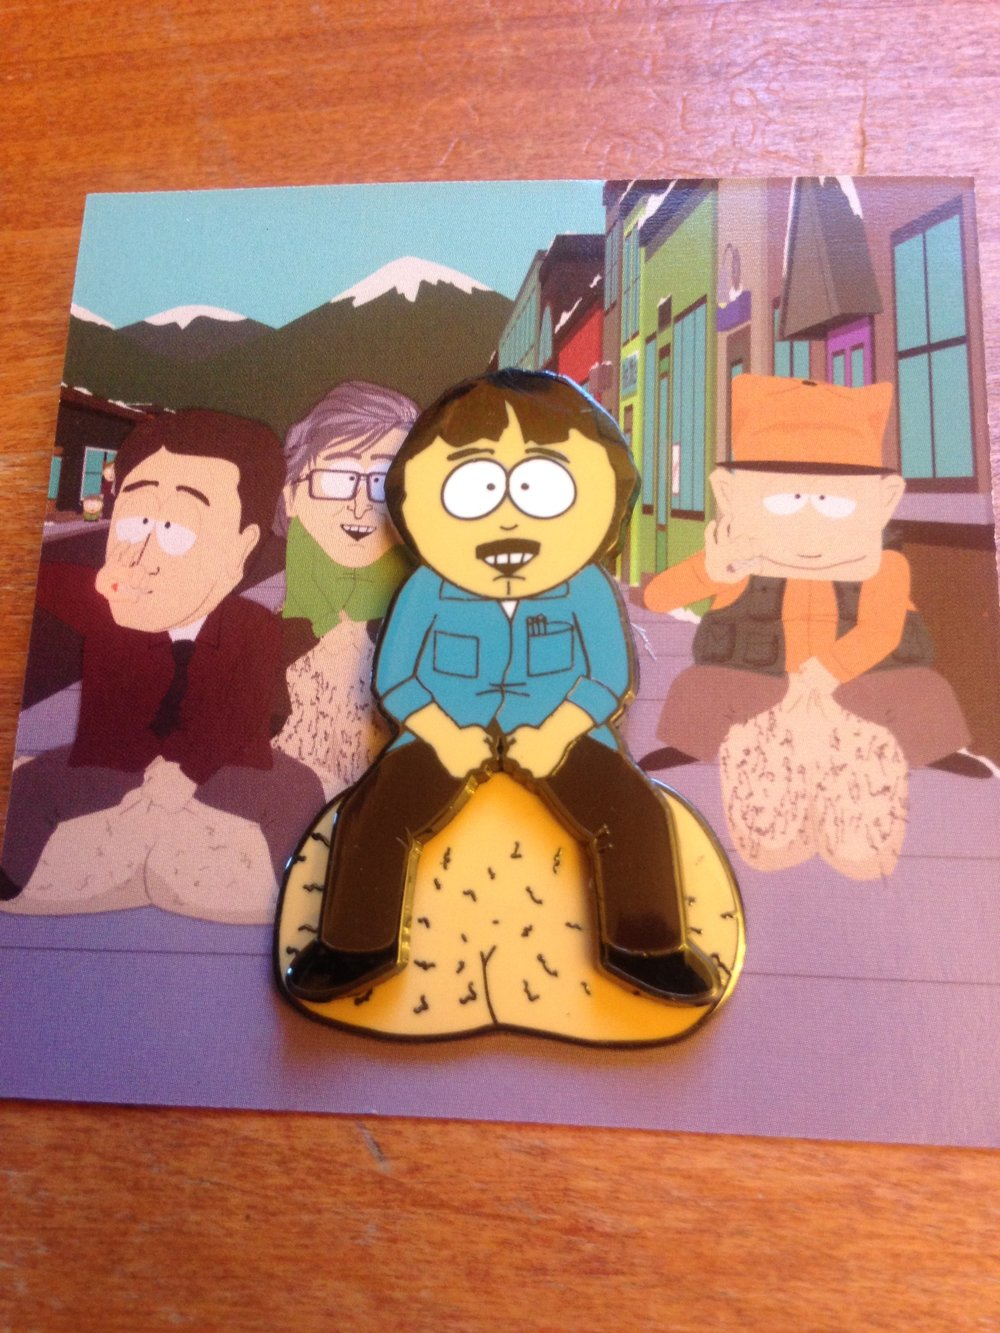 #1. Randy Marsh with Swinging Balls Pin